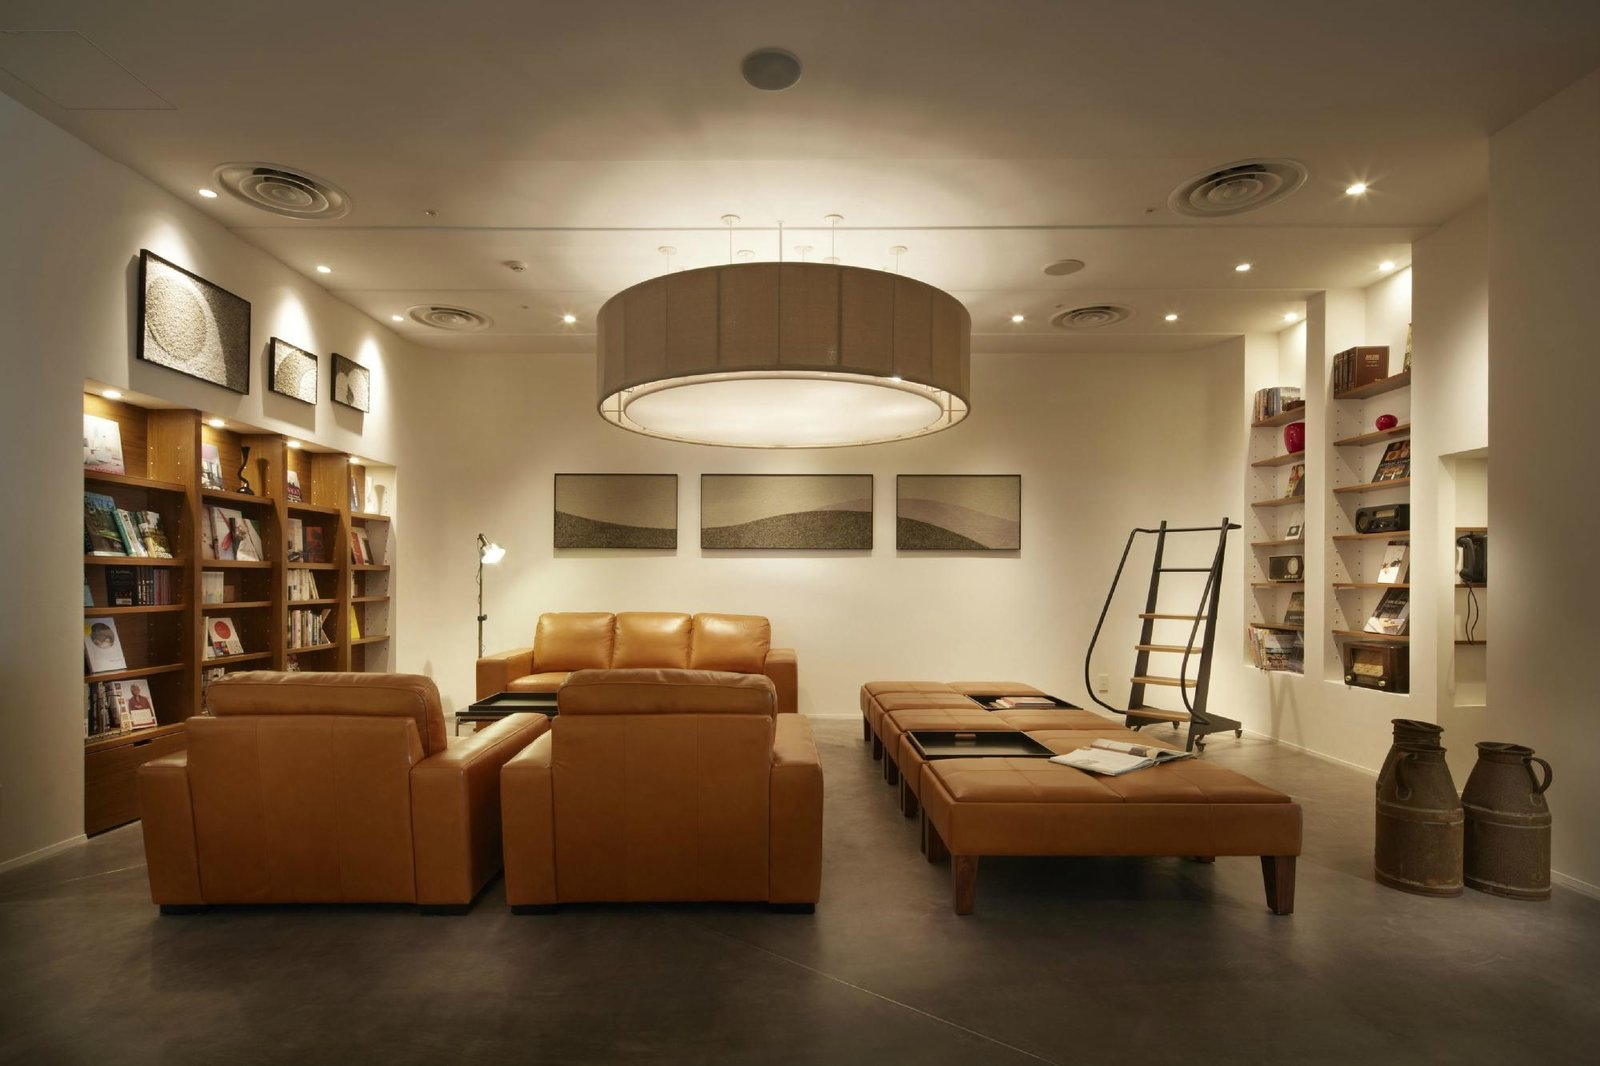 Living Room, Shelves, Floor Lighting, Sofa, Recessed Lighting, Pendant Lighting, Bench, Concrete Floor, and Lamps Agora Fukuoka Hilltop Hotel & Spa in Fukuoka, Japan  Photo 3 of 11 in 10 Alluring Places to Stay in Japan Under $300 a Night from Agora Fukuoka Hilltop Hotel & Spa